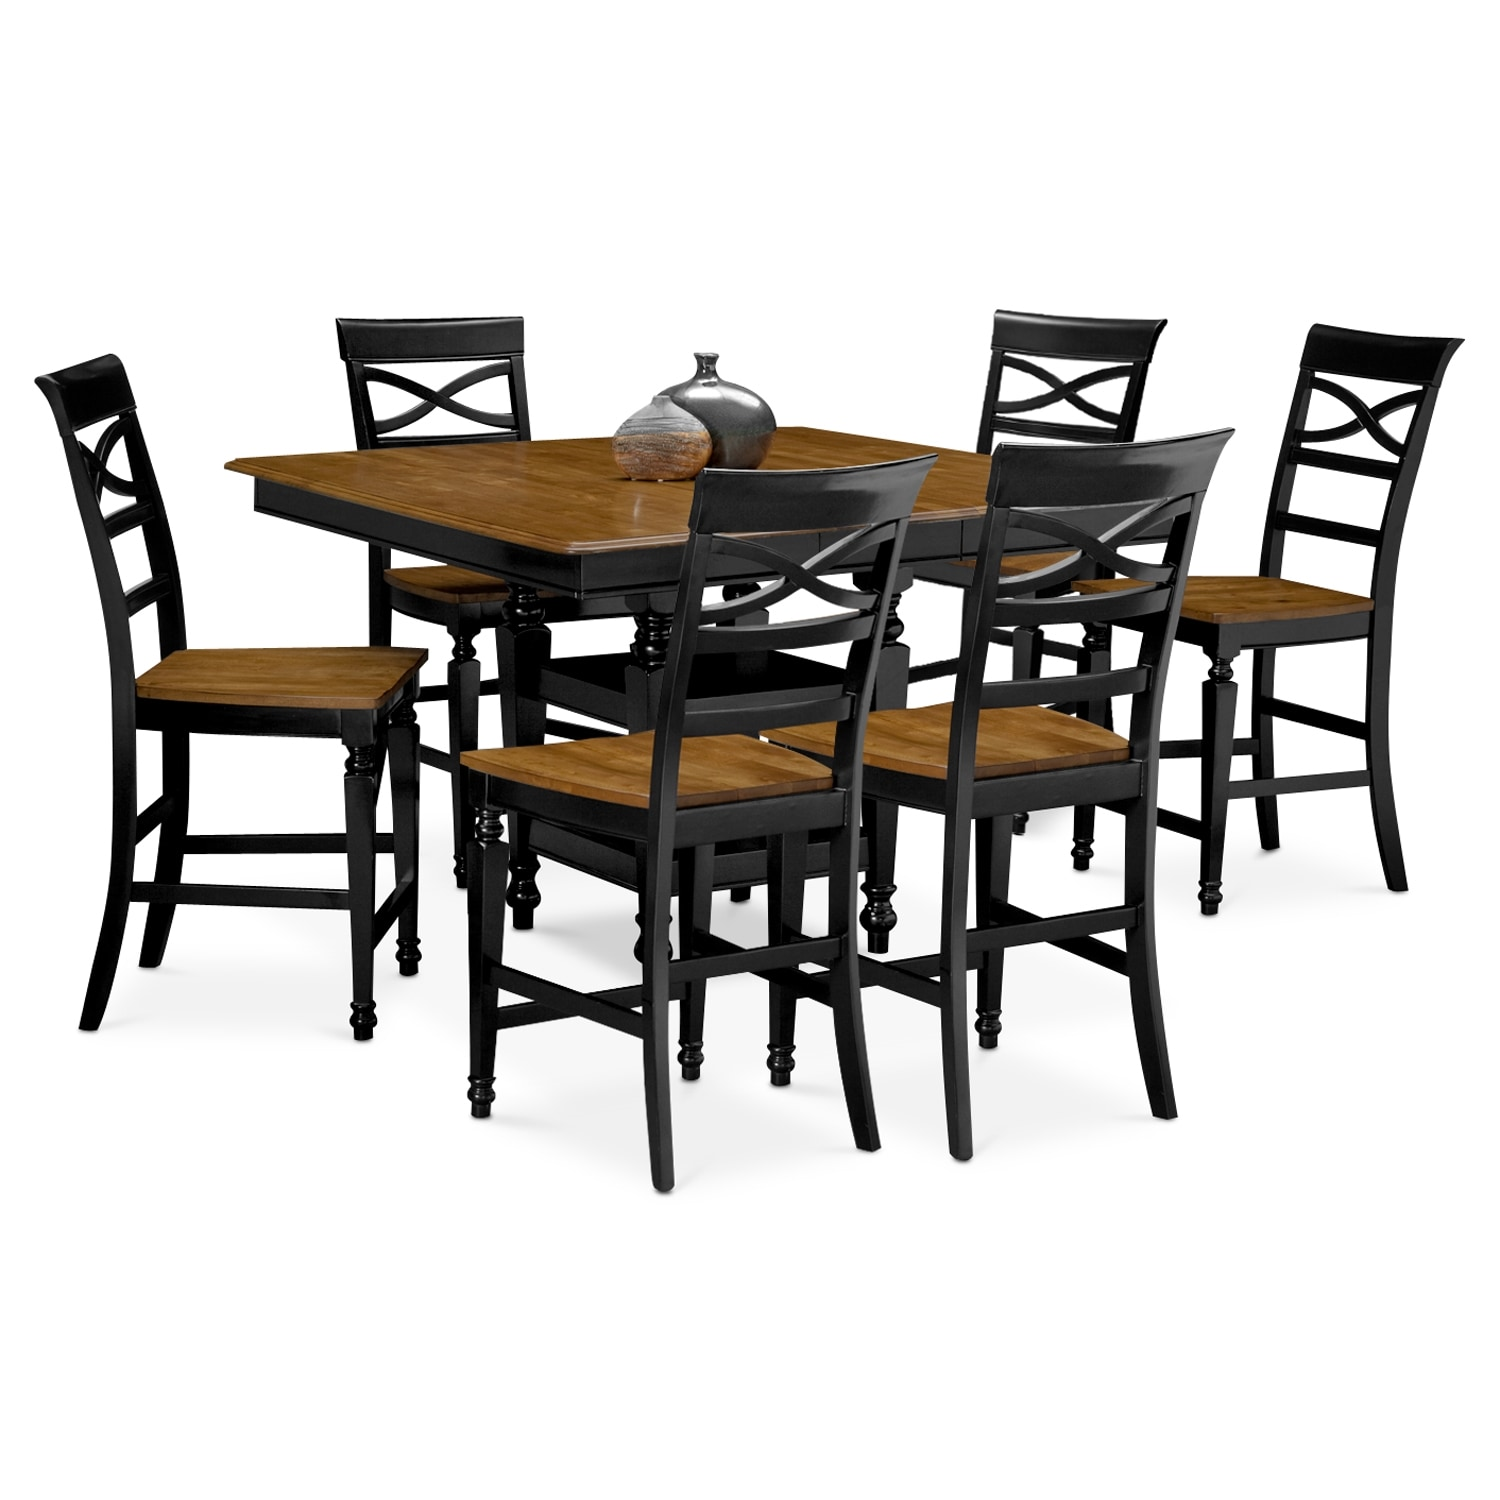 Dining Room Furniture - Chesapeake 7 Pc. Counter-Height Dining Room